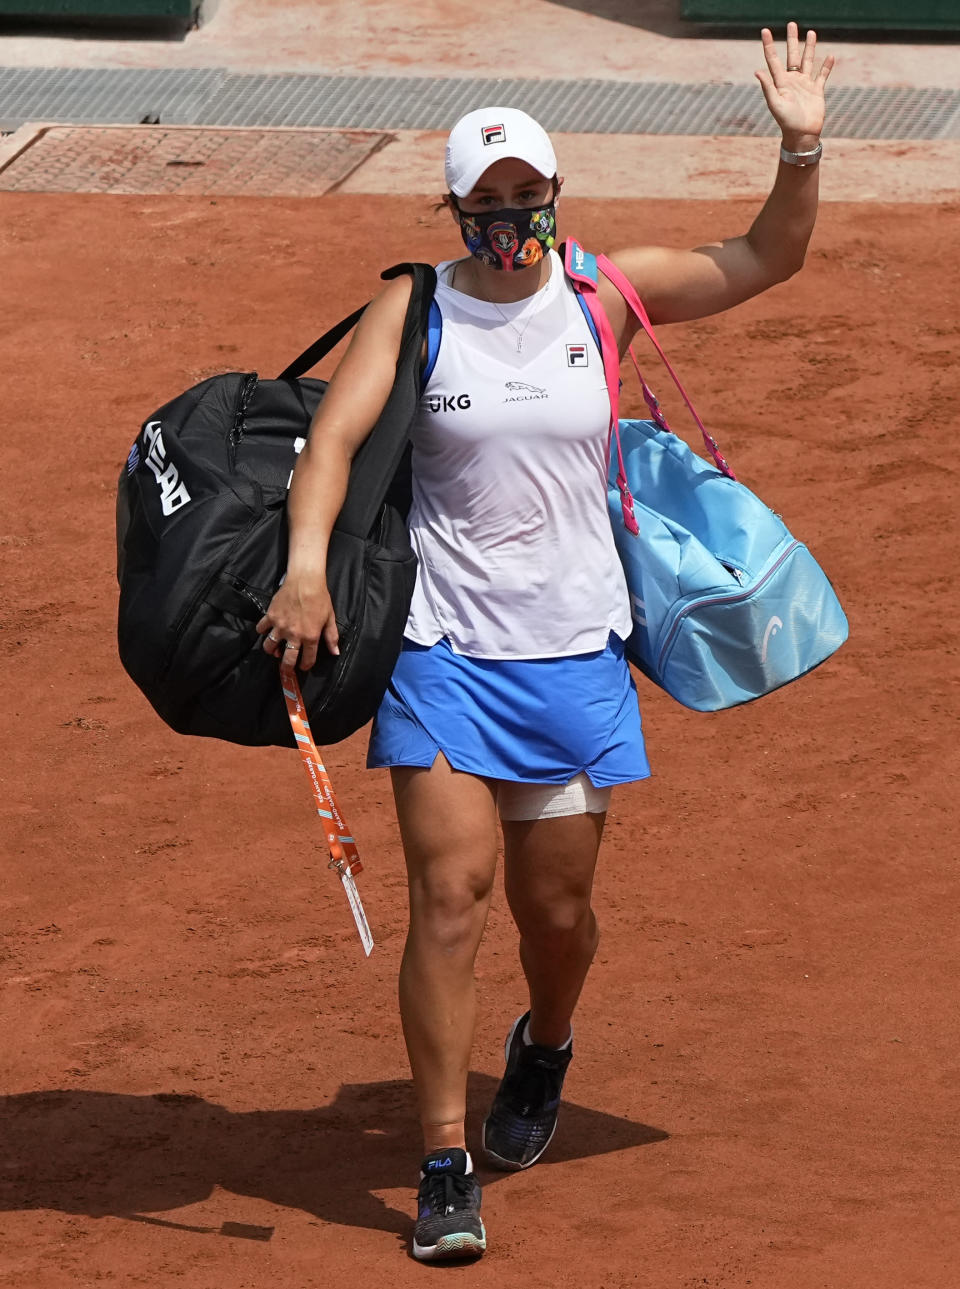 Australia's Ashleigh Barty waves goodbye as she retires with an injury as she was playing againstPoland's Magda Linette during their second round match on day 5, of the French Open tennis tournament at Roland Garros in Paris, France, Thursday, June 3, 2021. (AP Photo/Michel Euler)